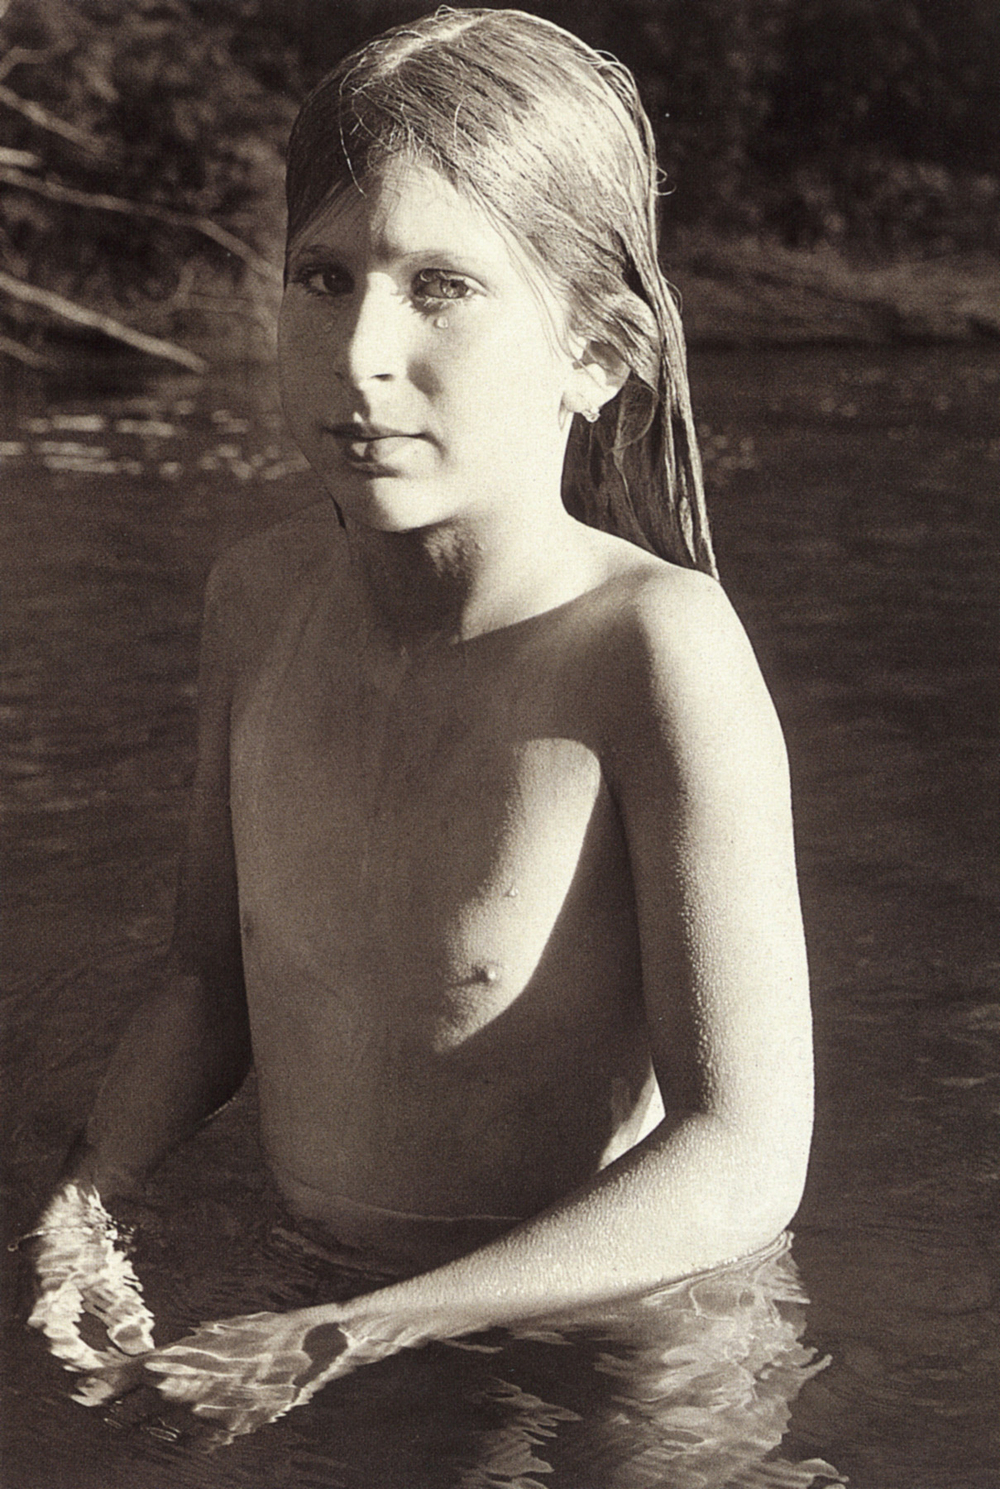 Evyan, Kinderhook Creek. 1975 Permanent Collection MoMA Ph: Sheila Metzner